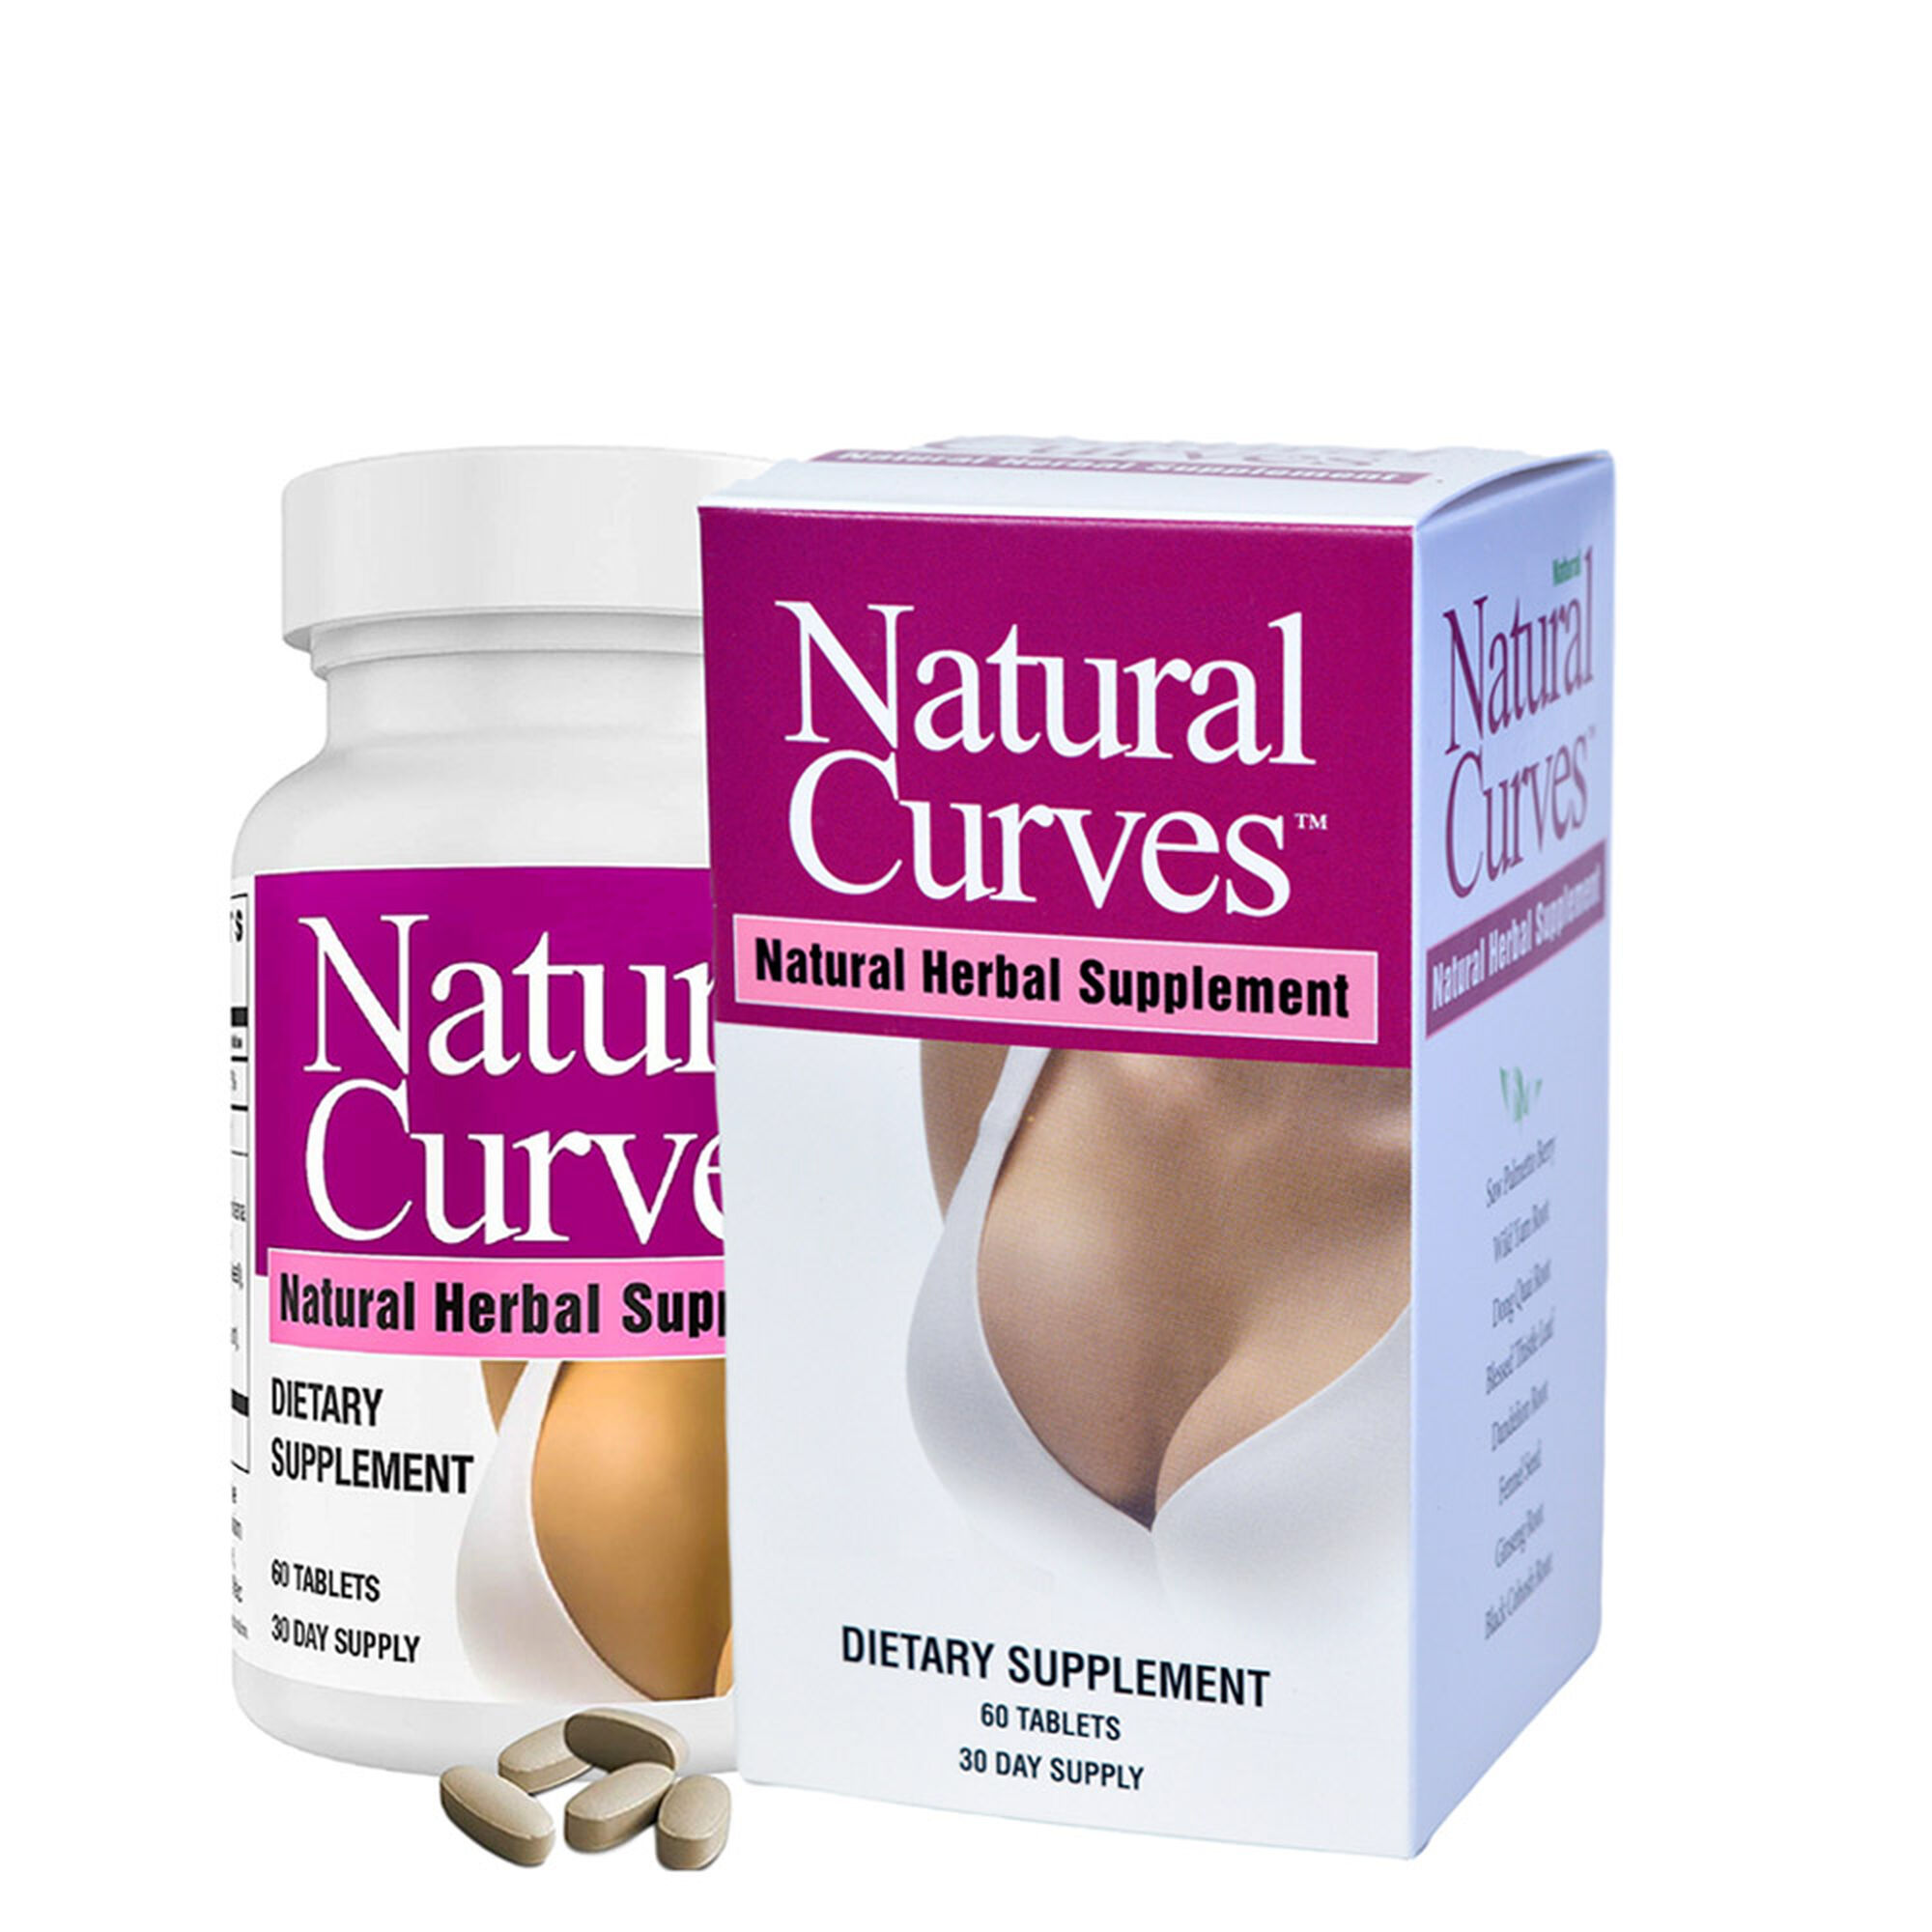 Natural Curves Natural Herbal Supplement Gnc